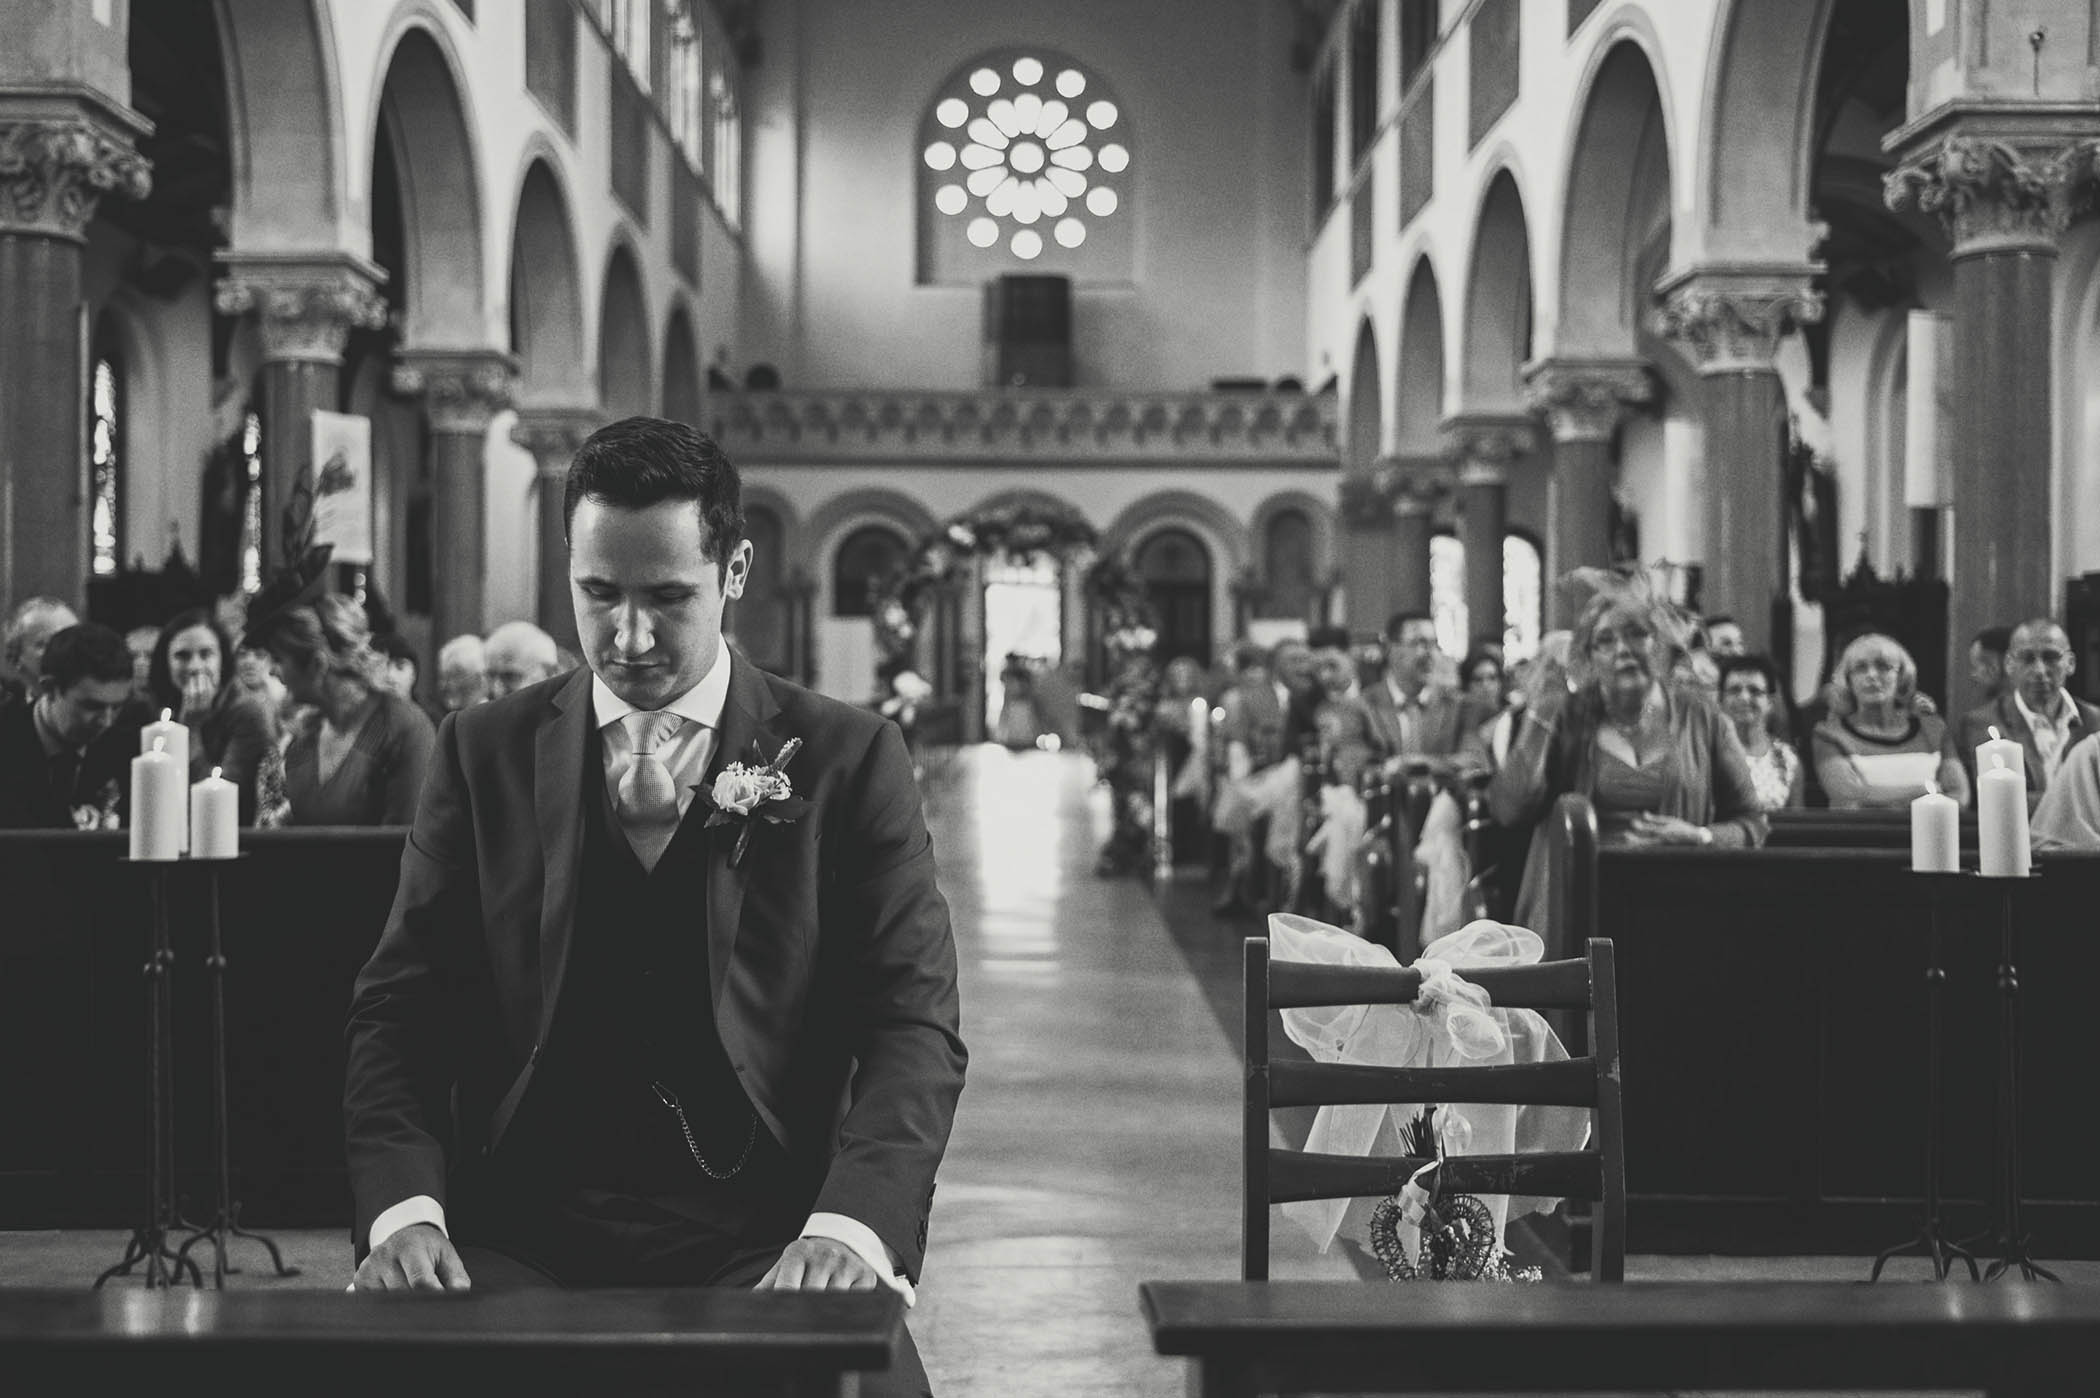 Groom waitingHarold's Cross Church wedding, patiently for bride to enter church